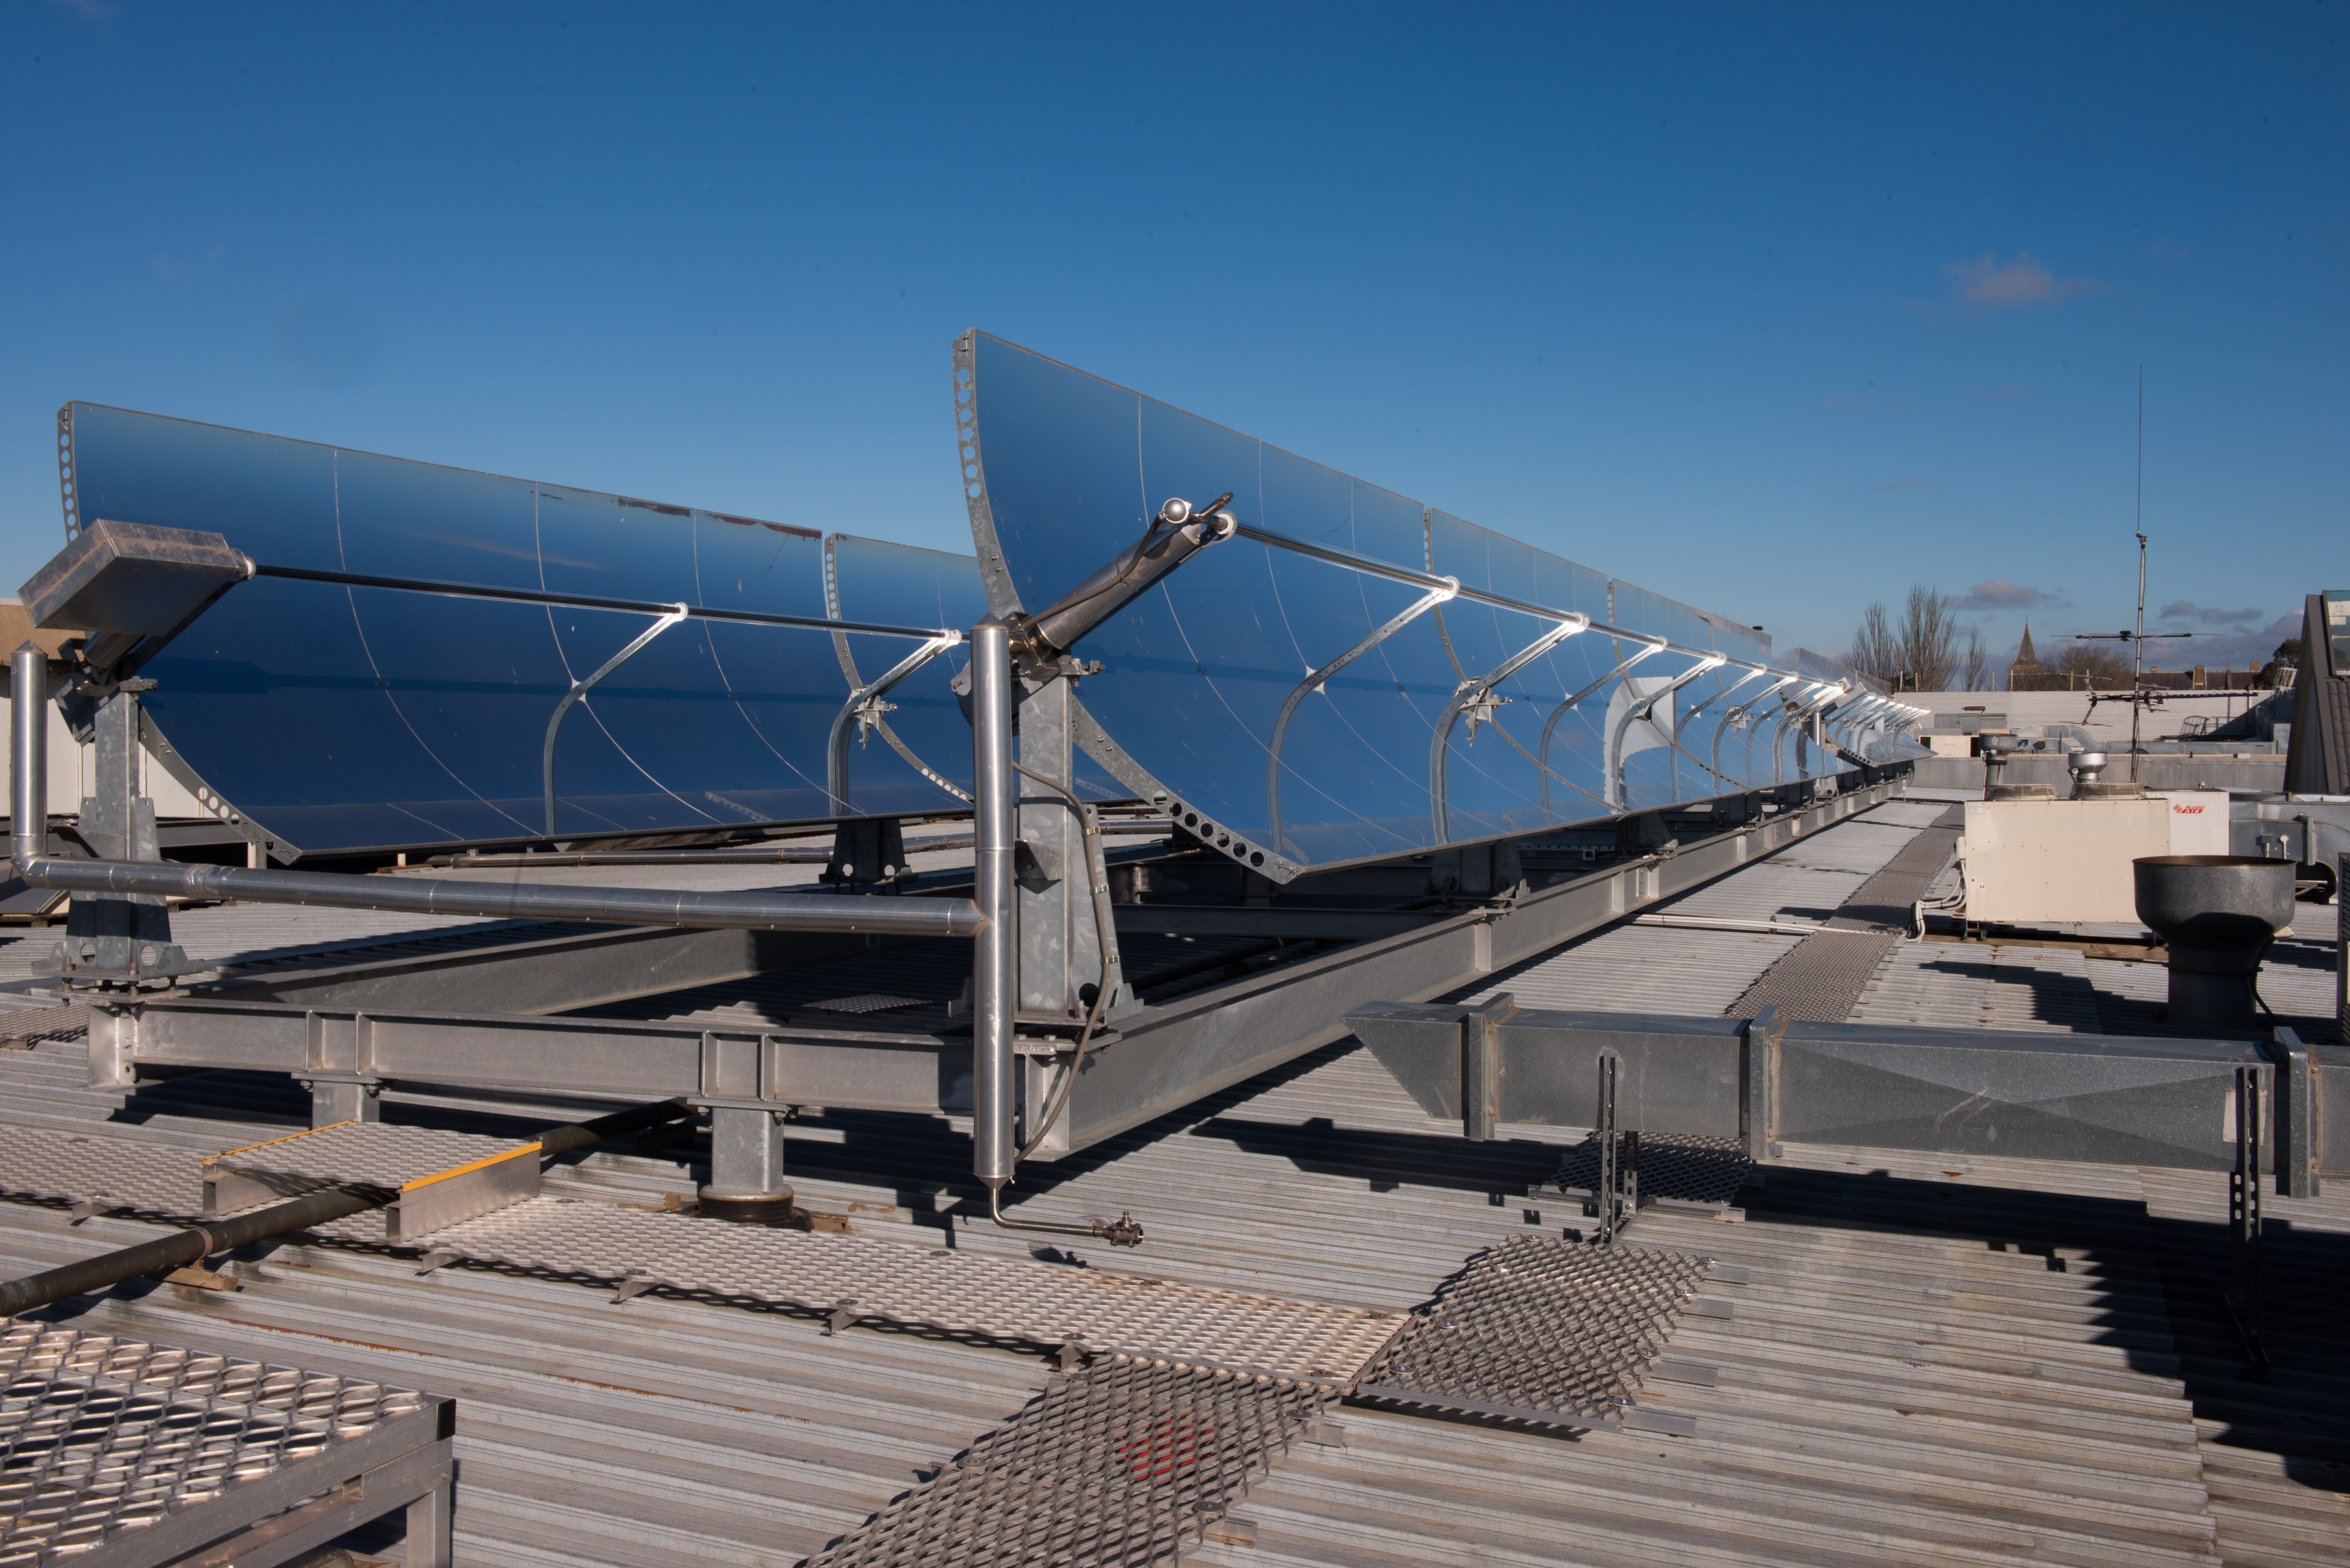 Rooftop concentrating solar thermal collectors